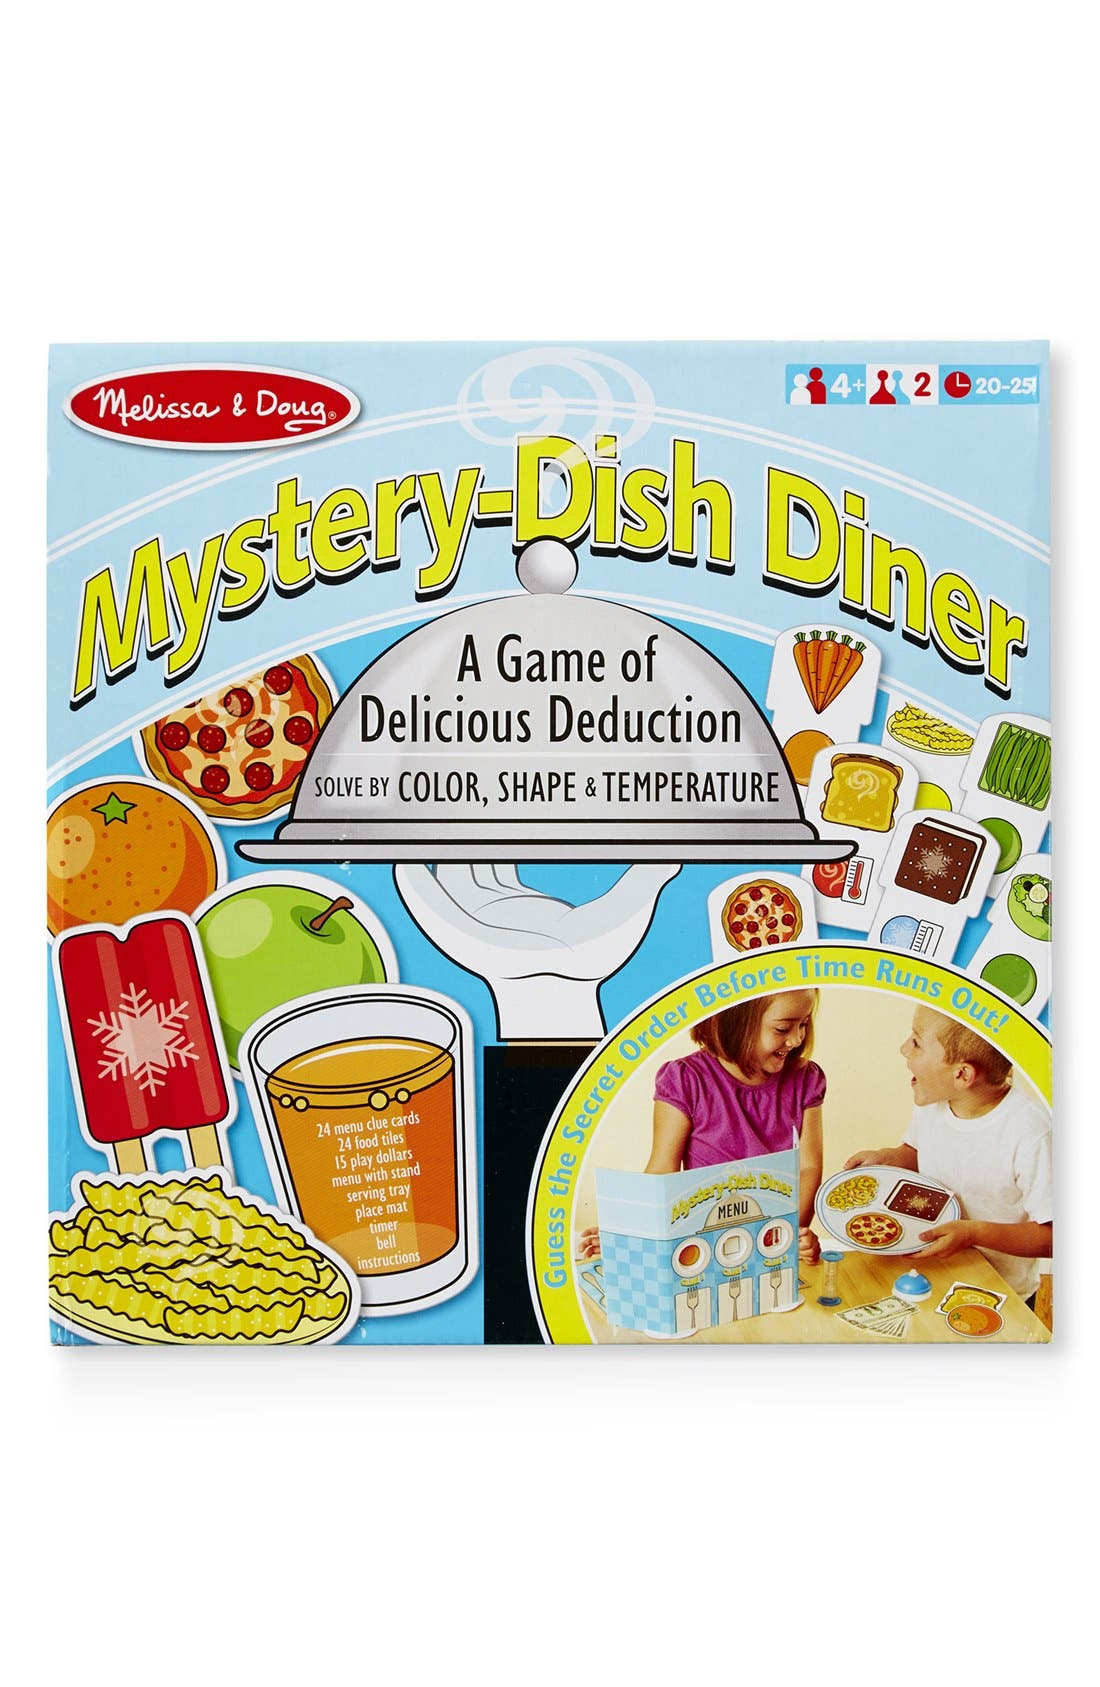 Alternate Image 1 Selected - Melissa & Doug 'Mystery Dish Diner' Game